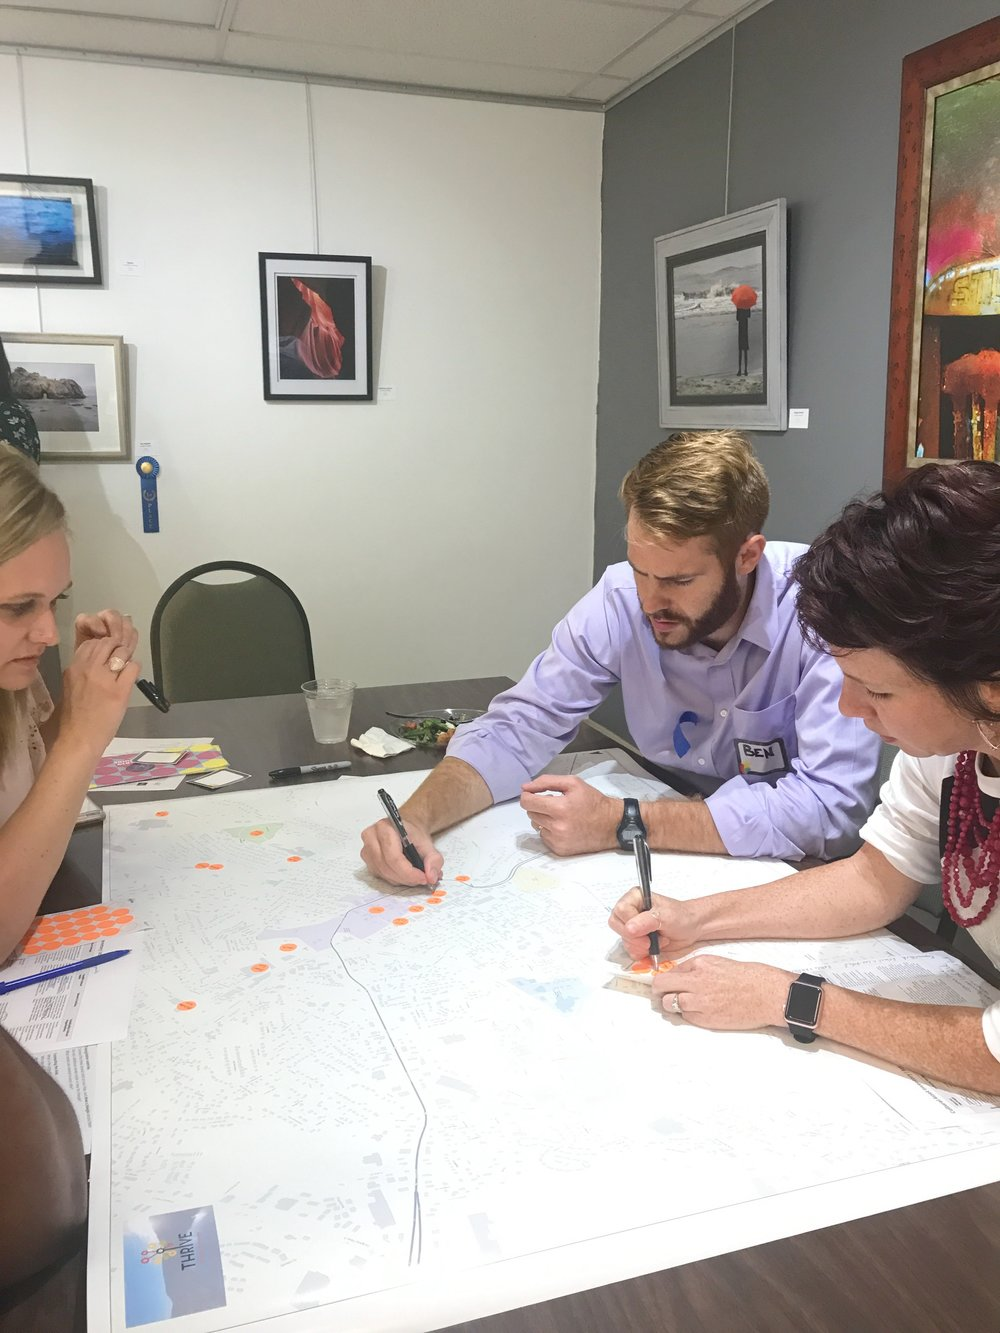 The team from Athens, TN, conducts an asset mapping exercise during the second round of Thriving Communities